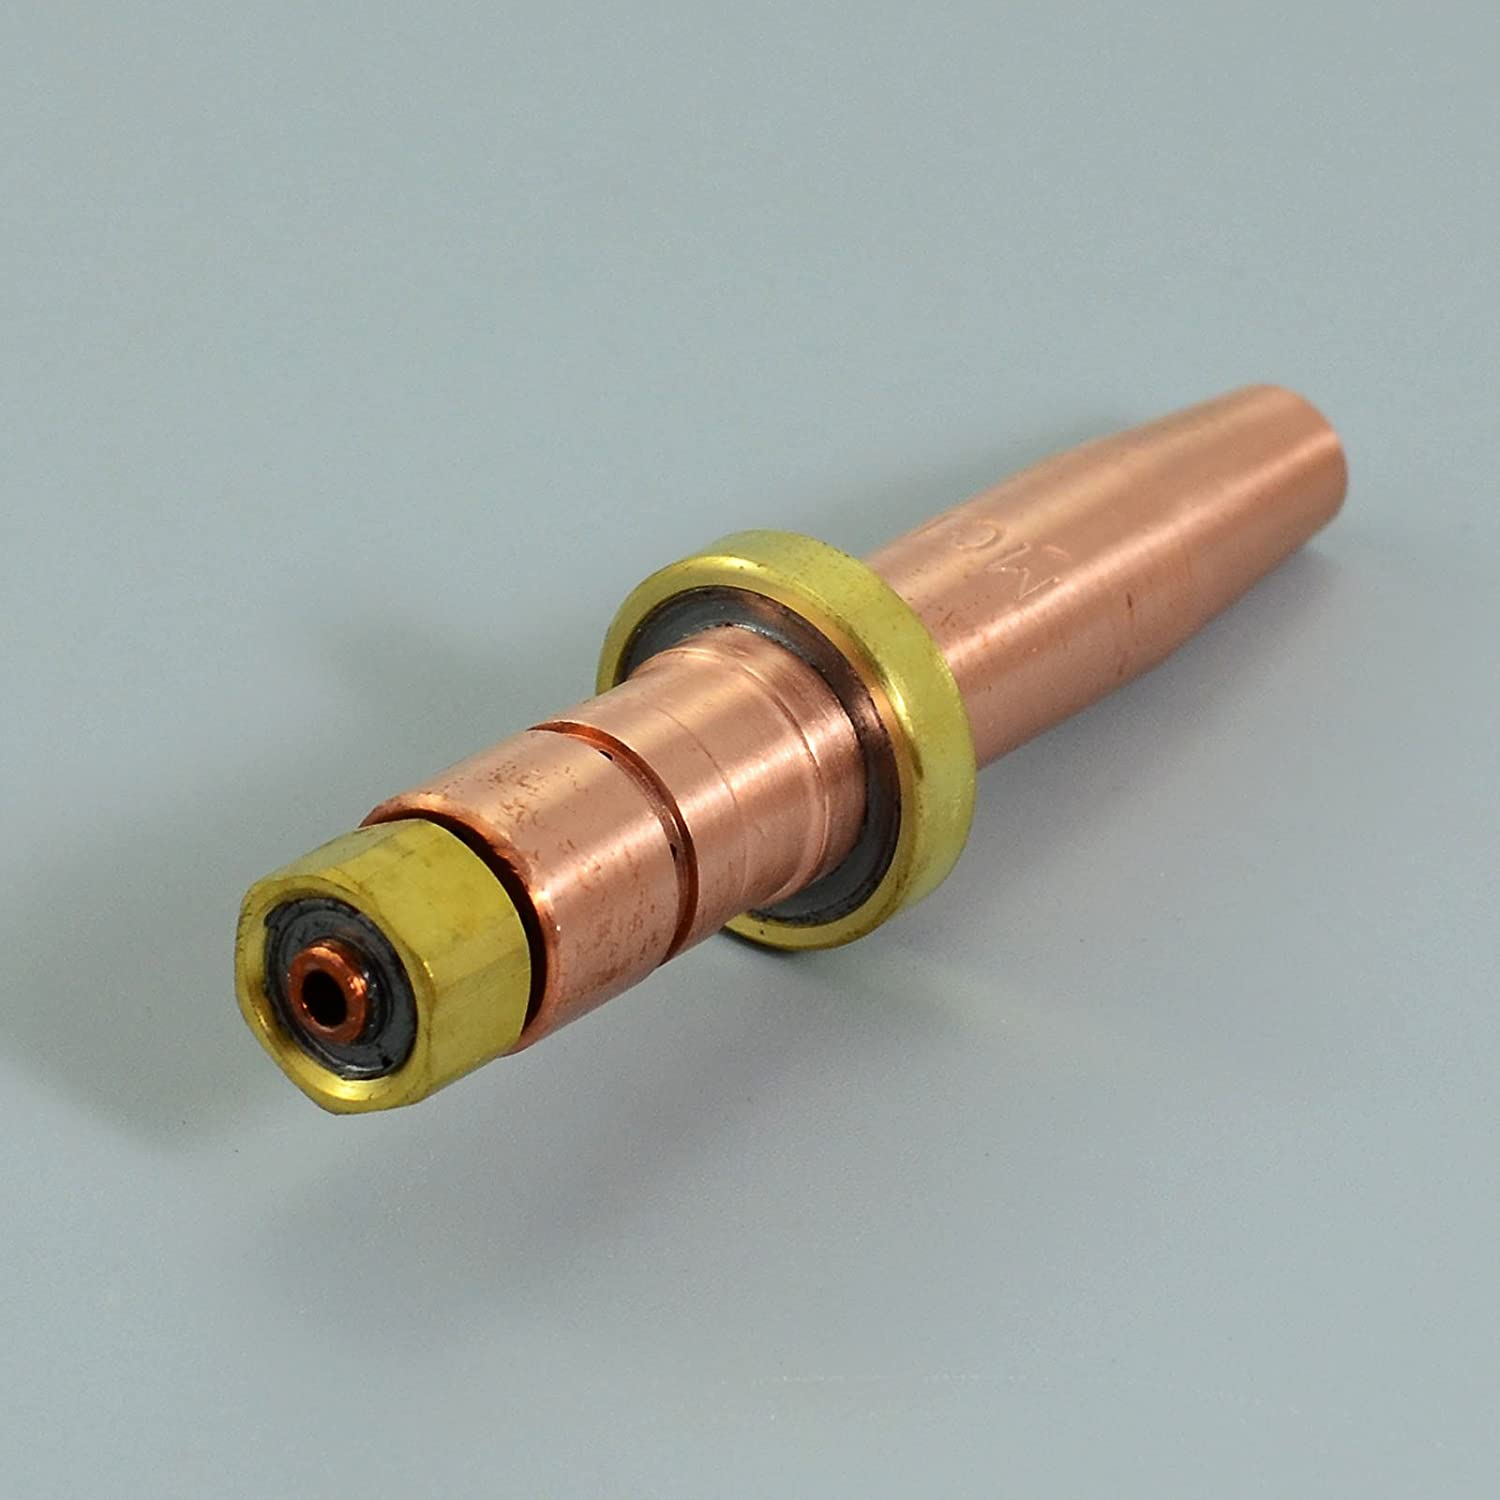 MC12 Size 2 Acetylene Cutting Tip for Smith Torch